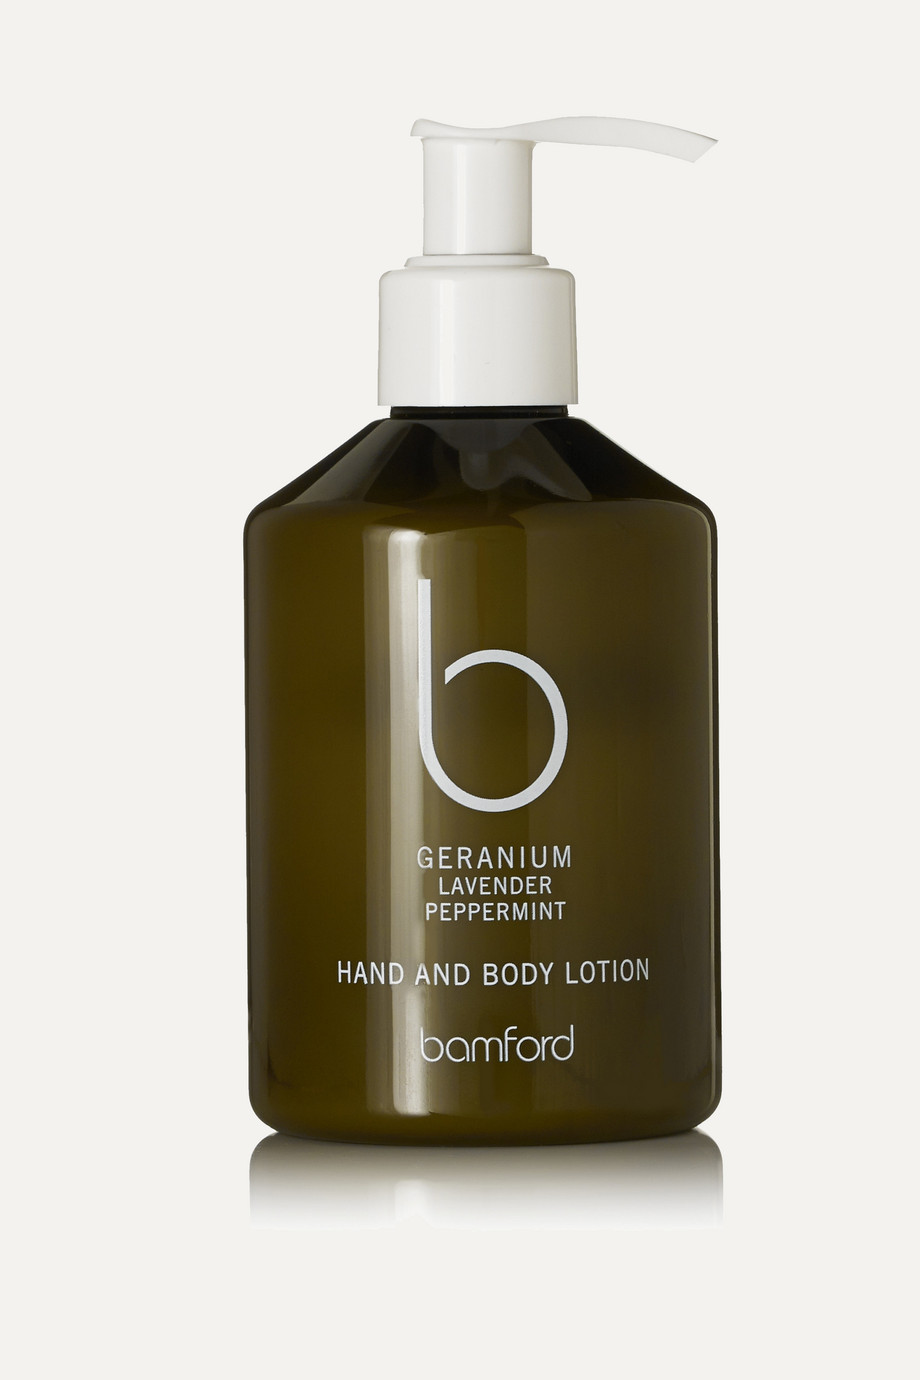 BAMFORD Geranium Hand & Body Lotion, 250ml